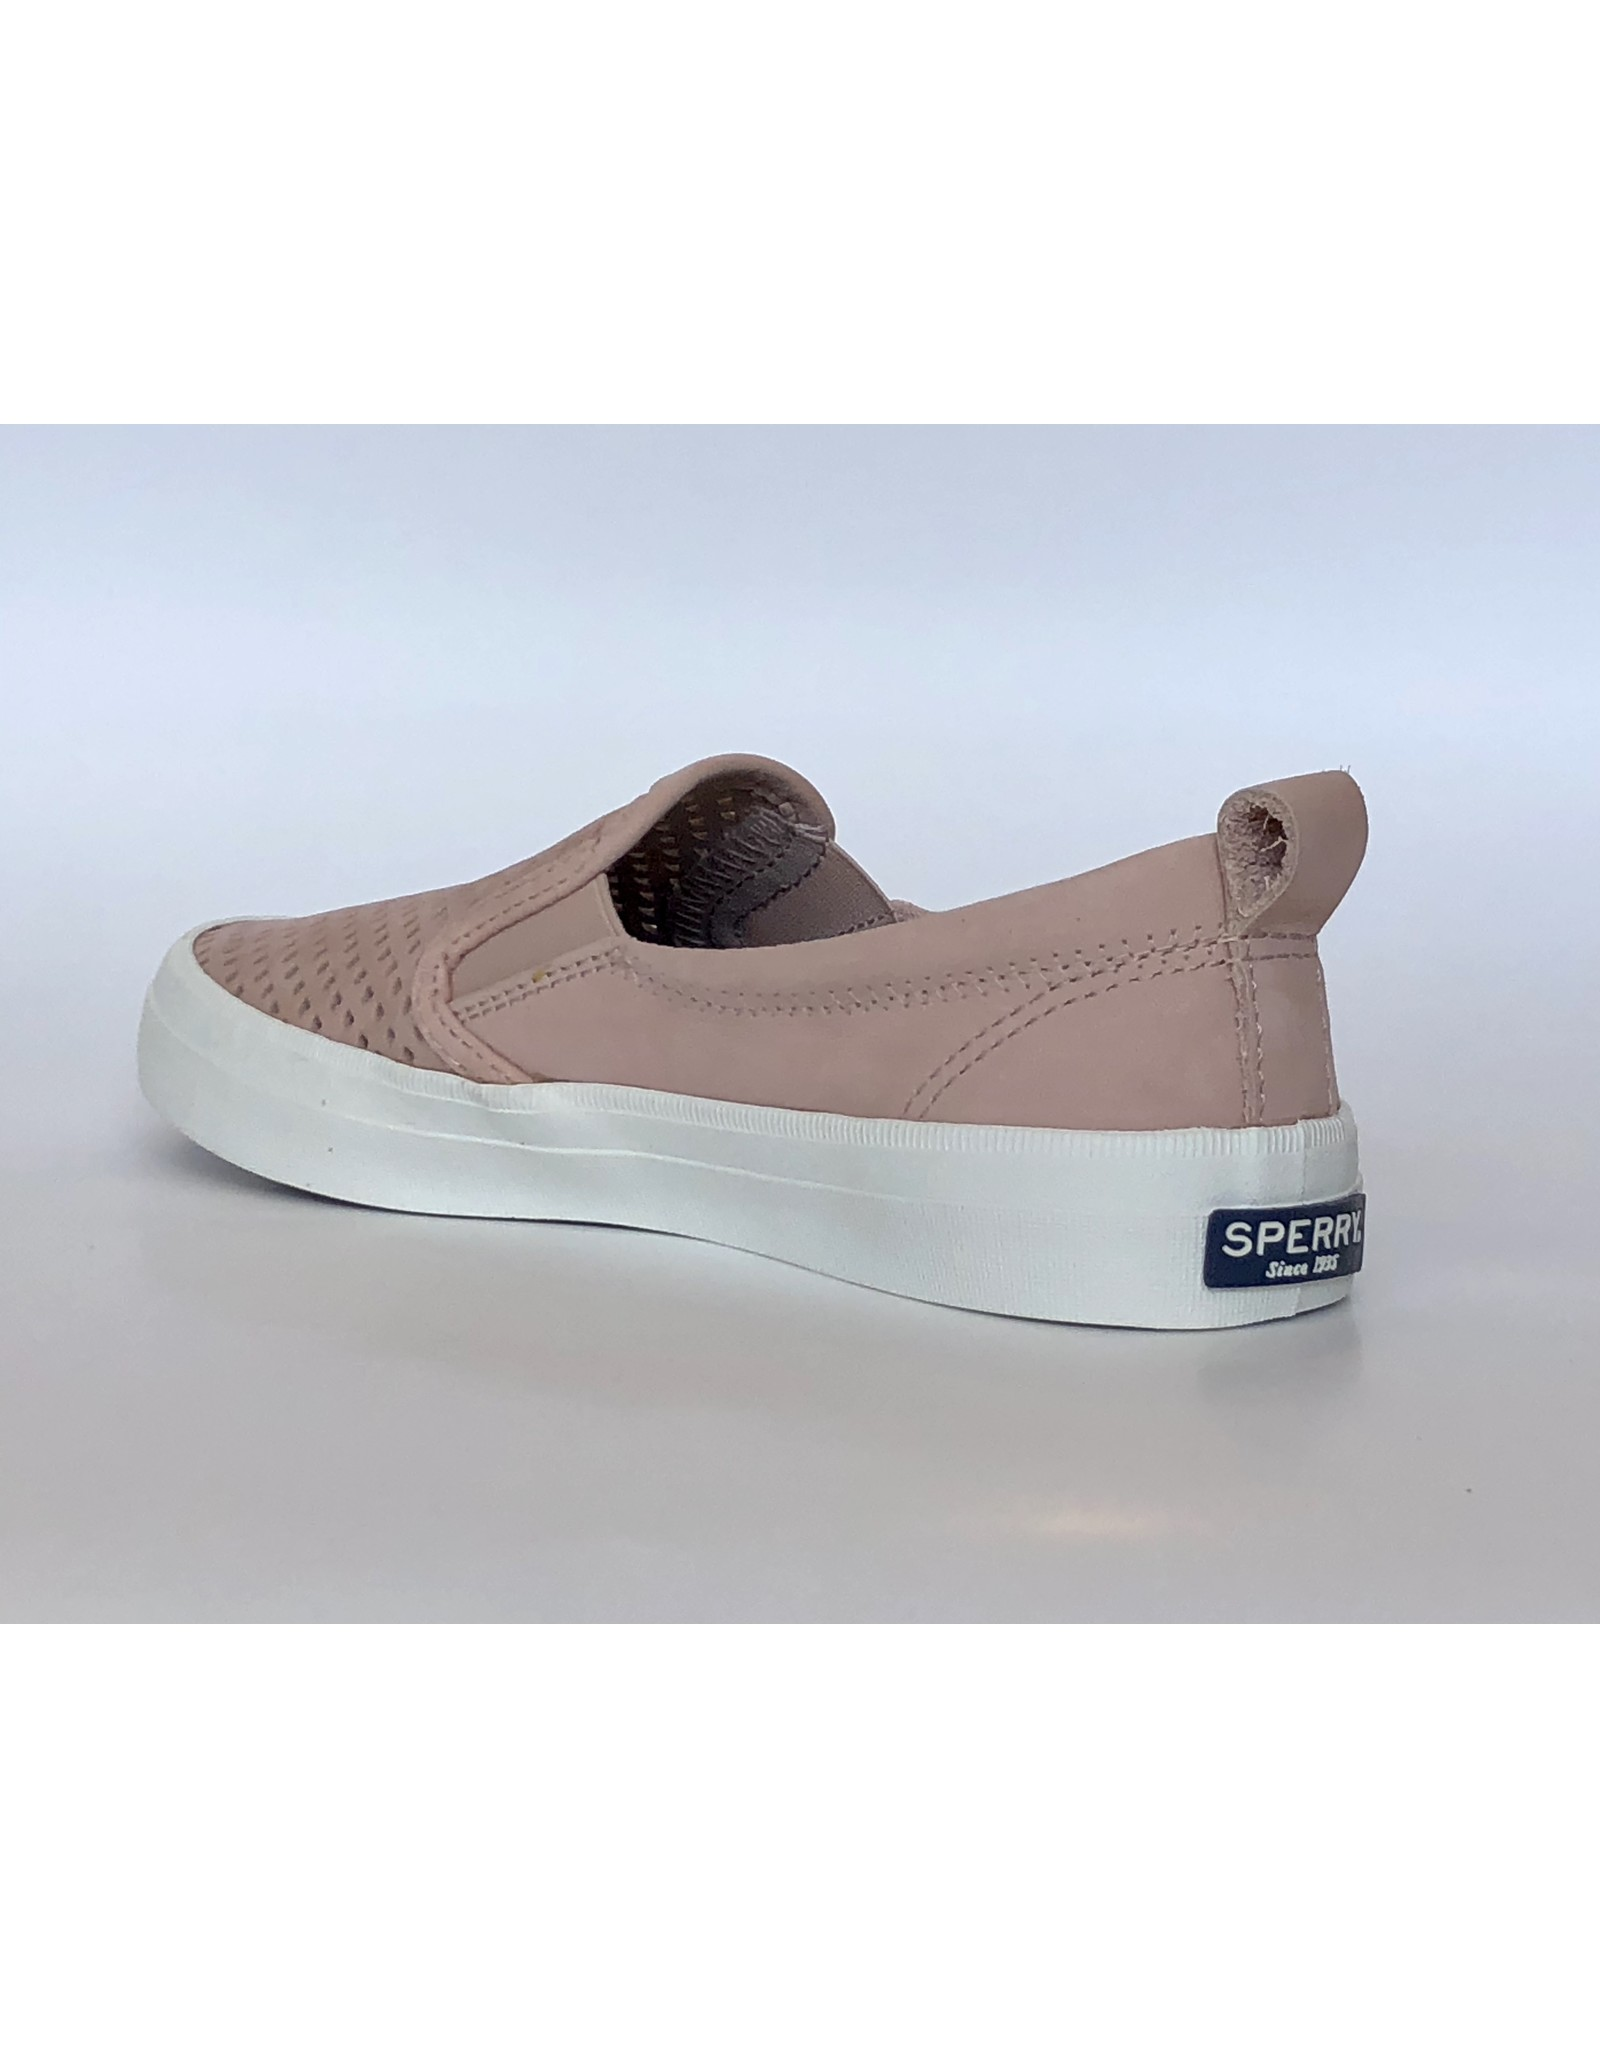 SPERRY STS85300